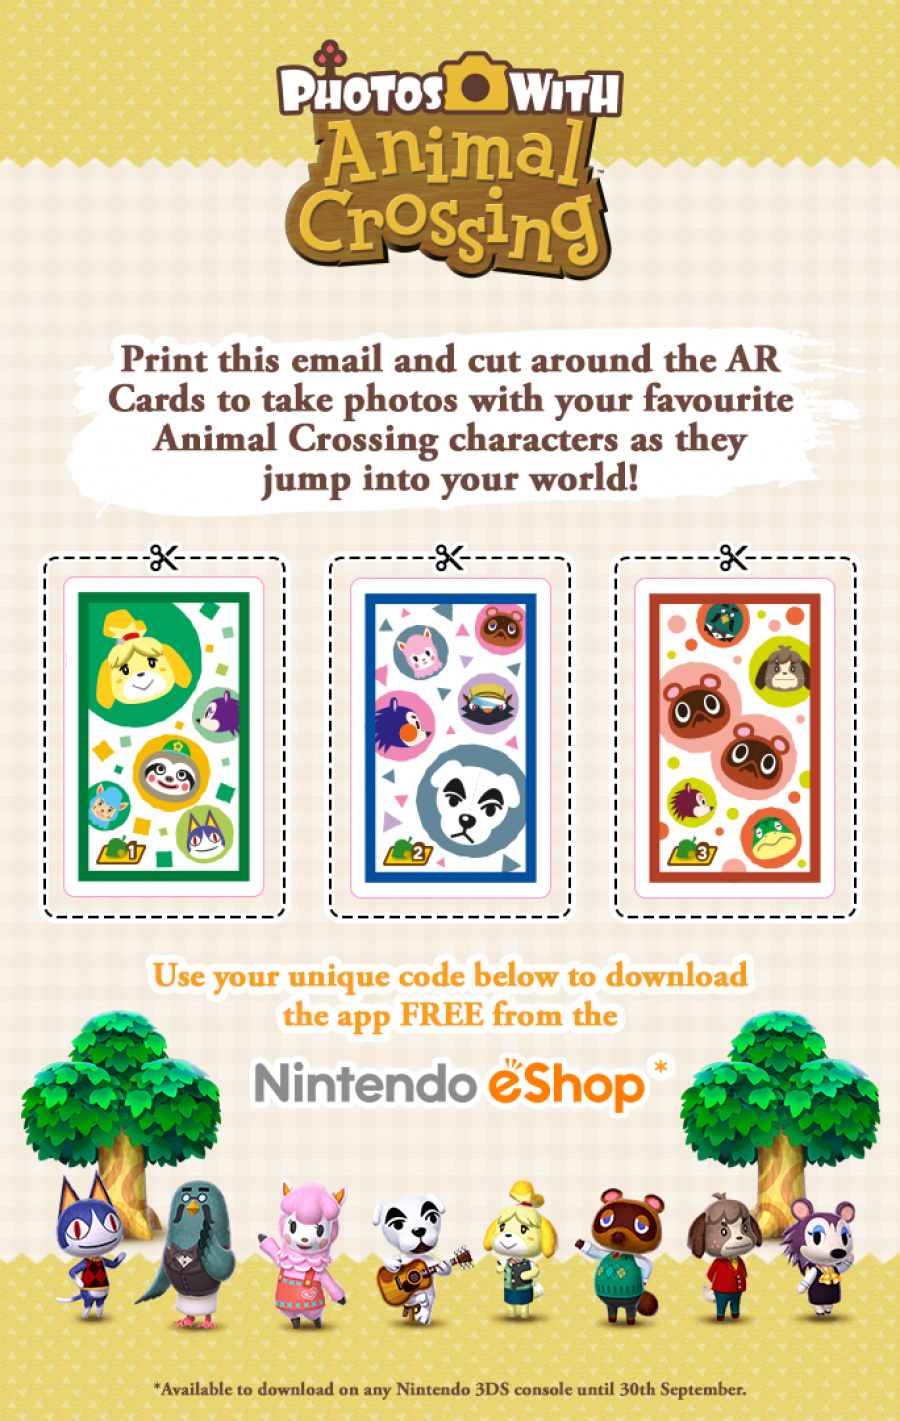 Nintendo uk sends out free photos with animal crossing download nuk animal crossingg gumiabroncs Image collections